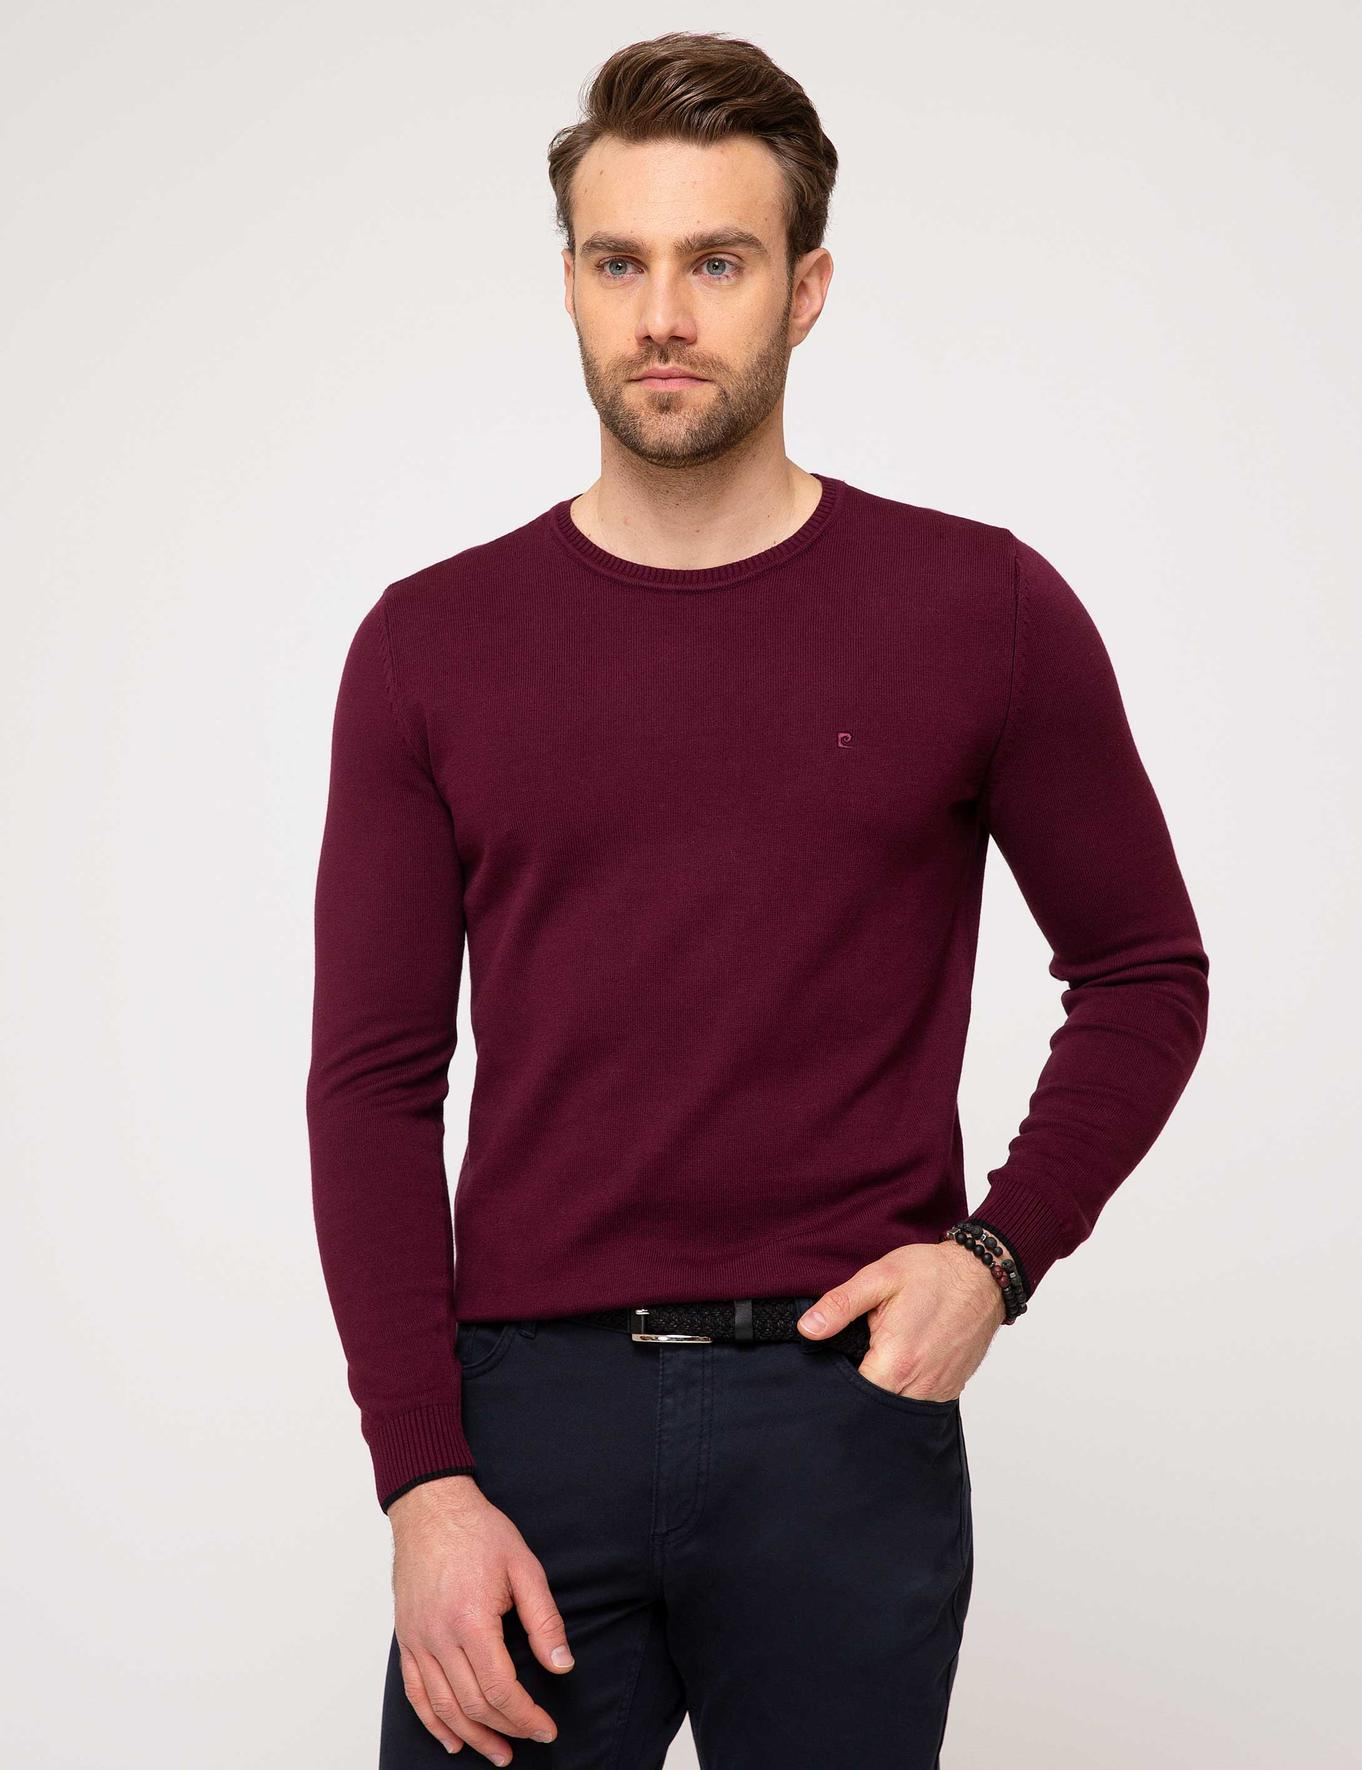 Bordo Slim Fit Bisiklet Yaka Basic Triko Kazak